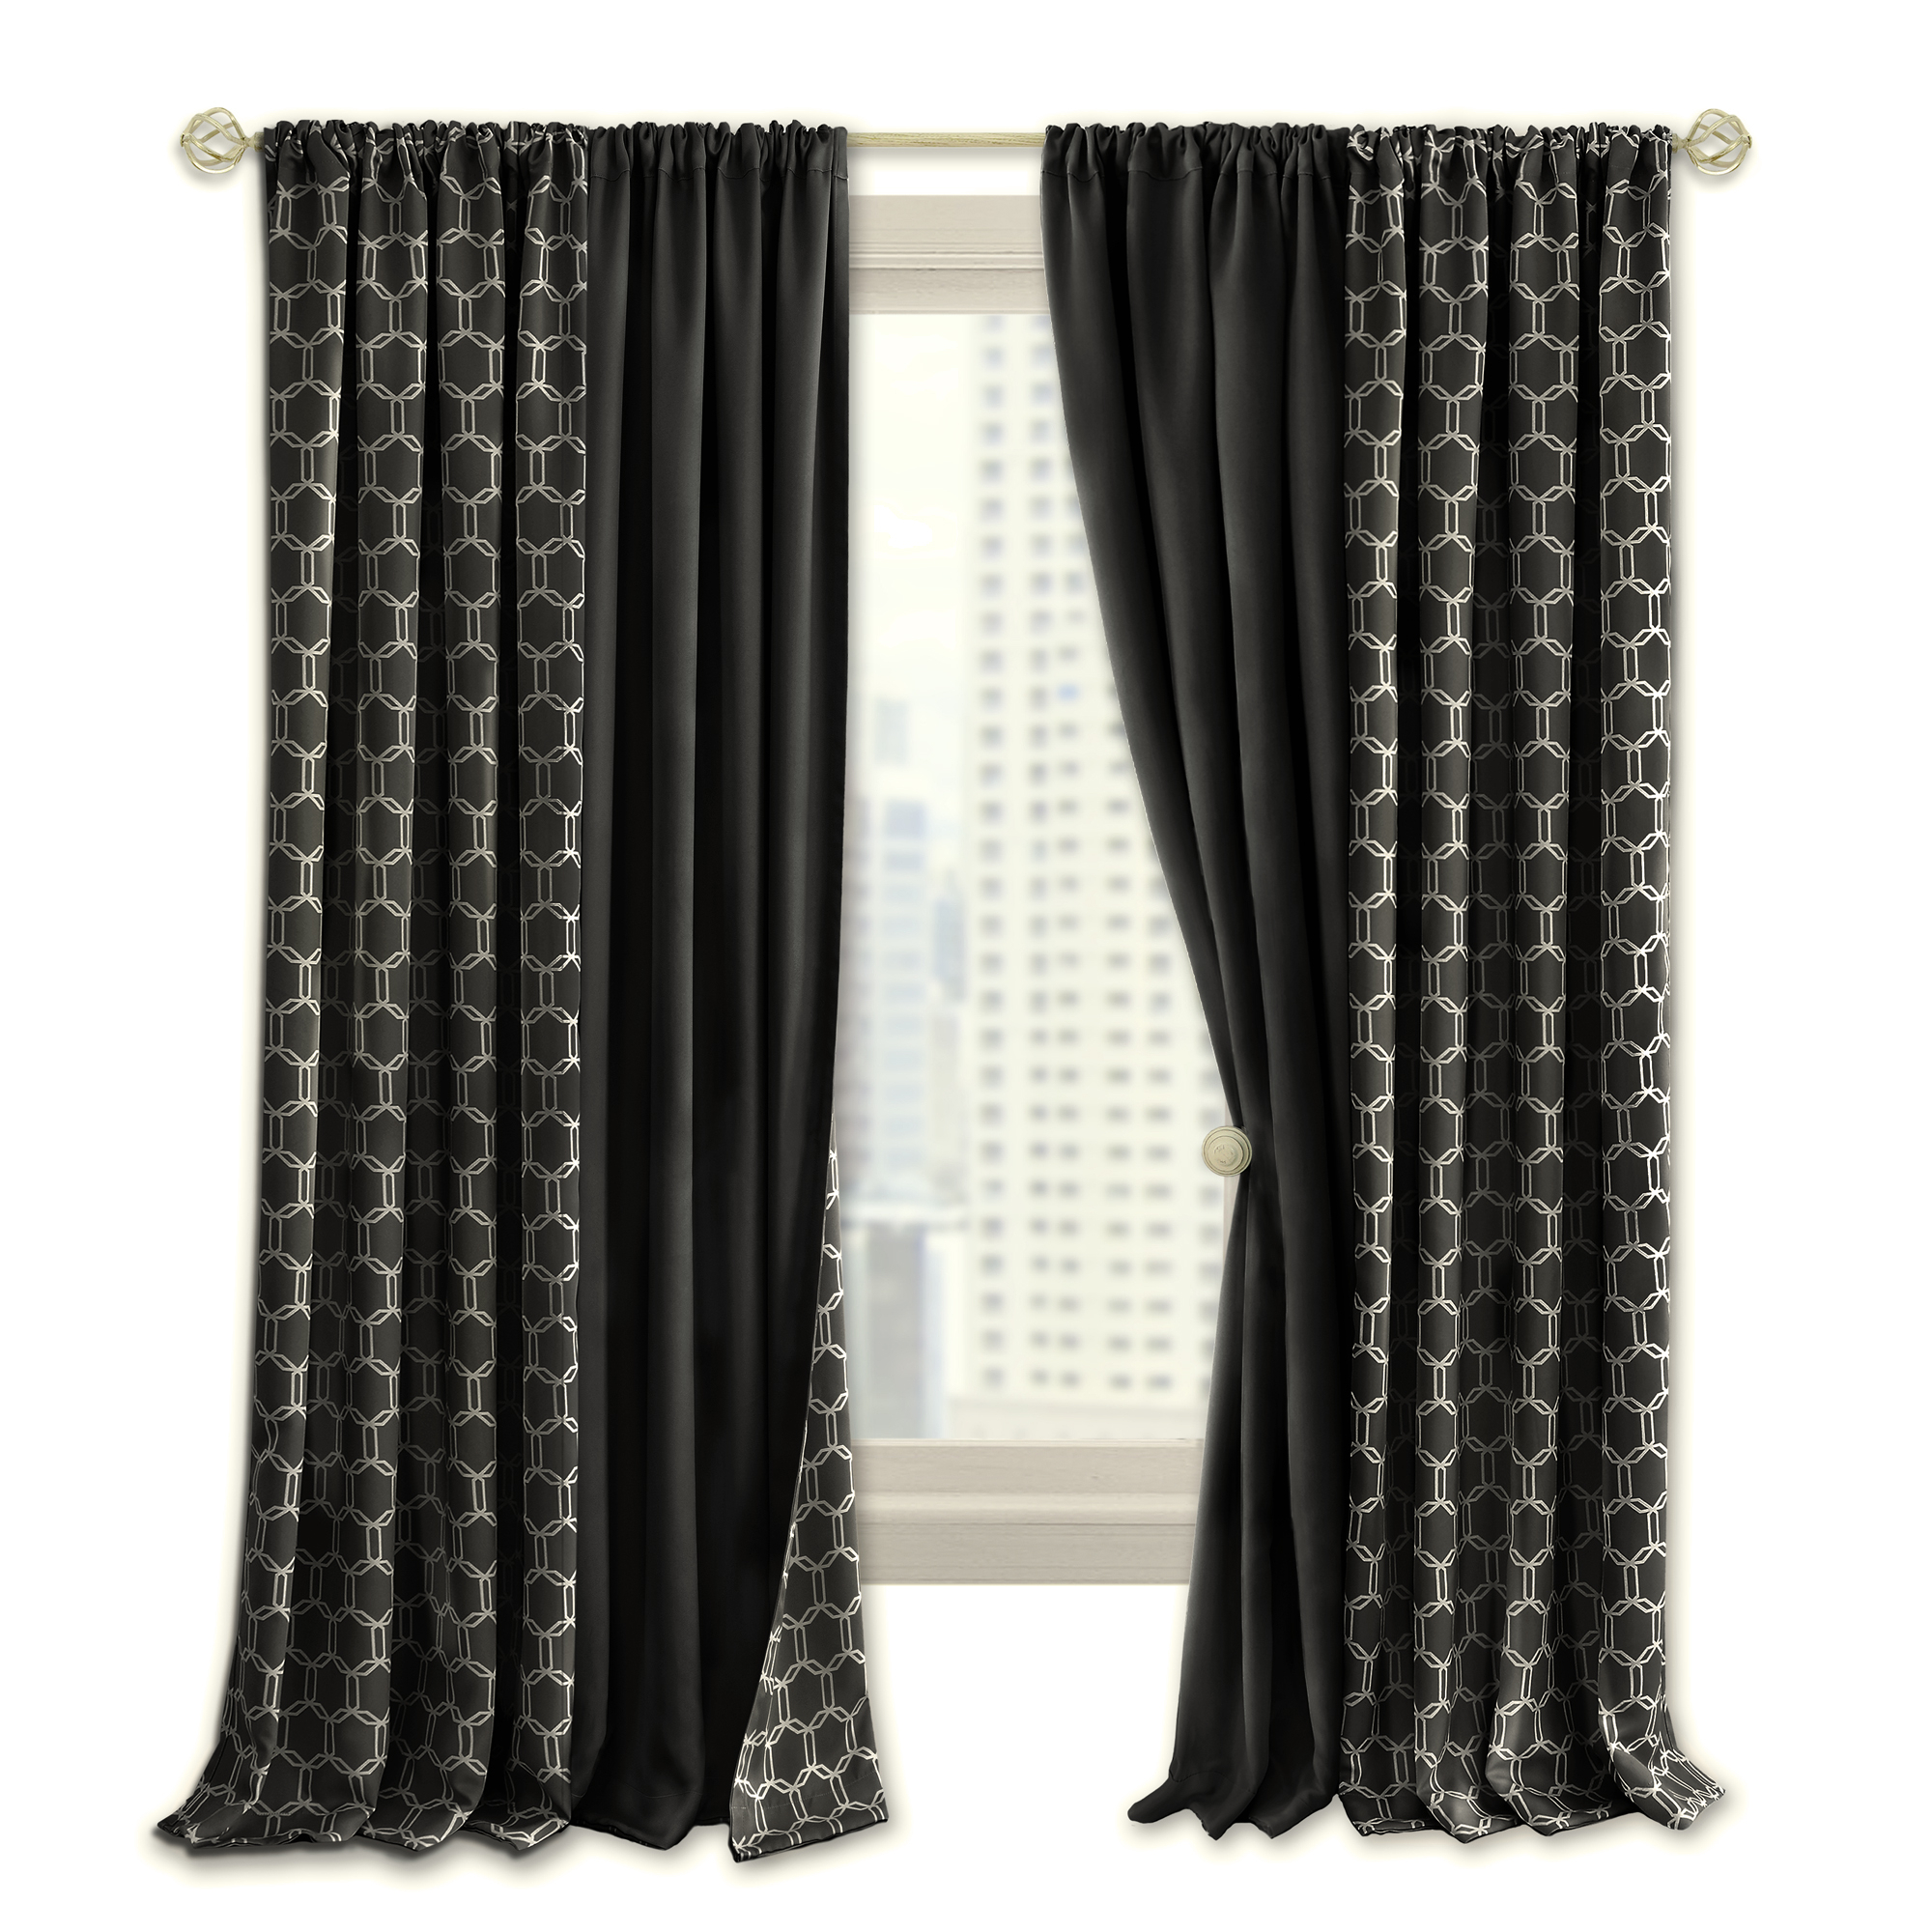 Best And Newest Prelude Reversible Blackout Rod Pocket Curtain Panel Inside Rod Pocket Curtain Panels (View 17 of 20)